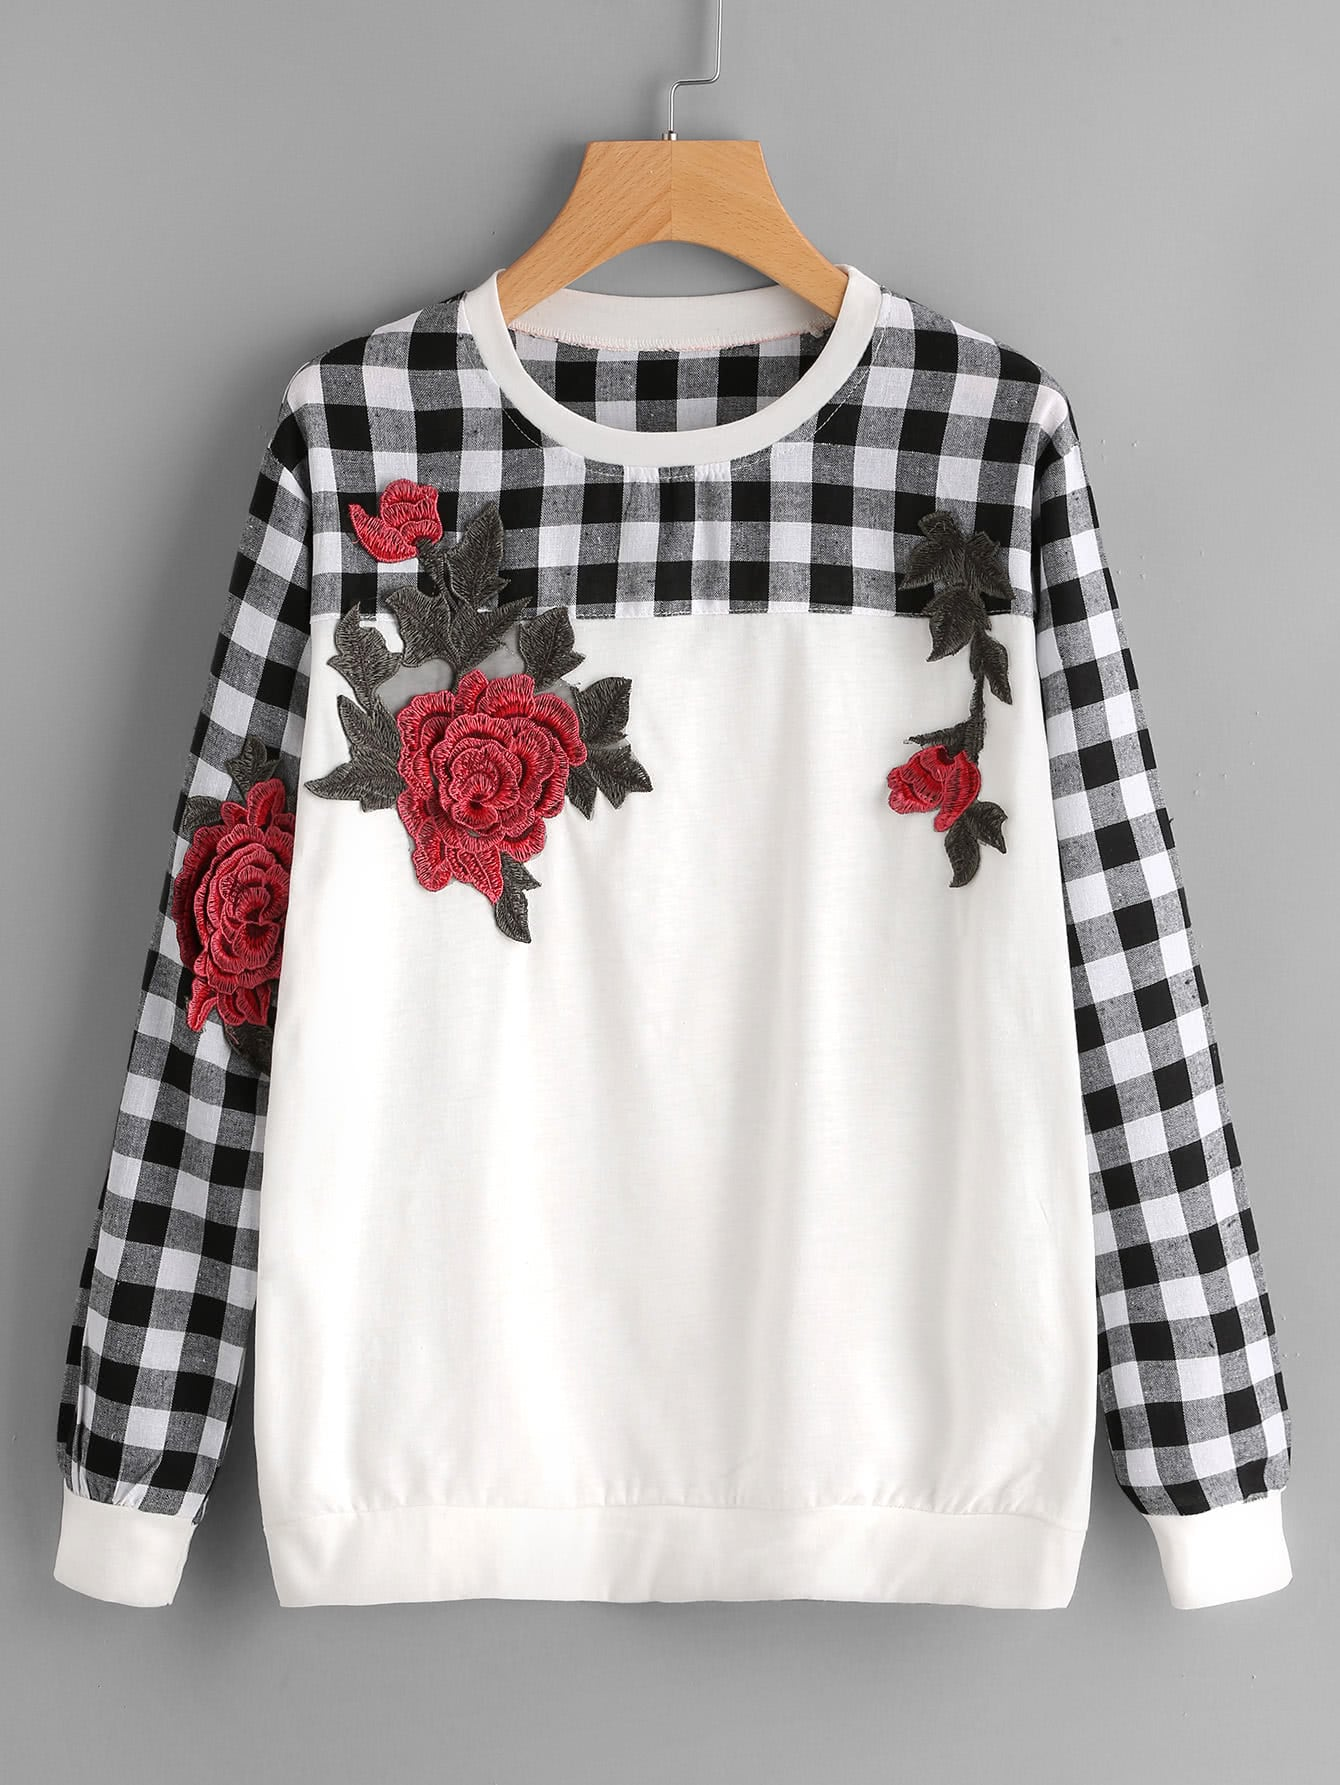 Contrast Check Plaid Embroidered Appliques Sweatshirt contrast check plaid embroidered appliques sweatshirt page 6